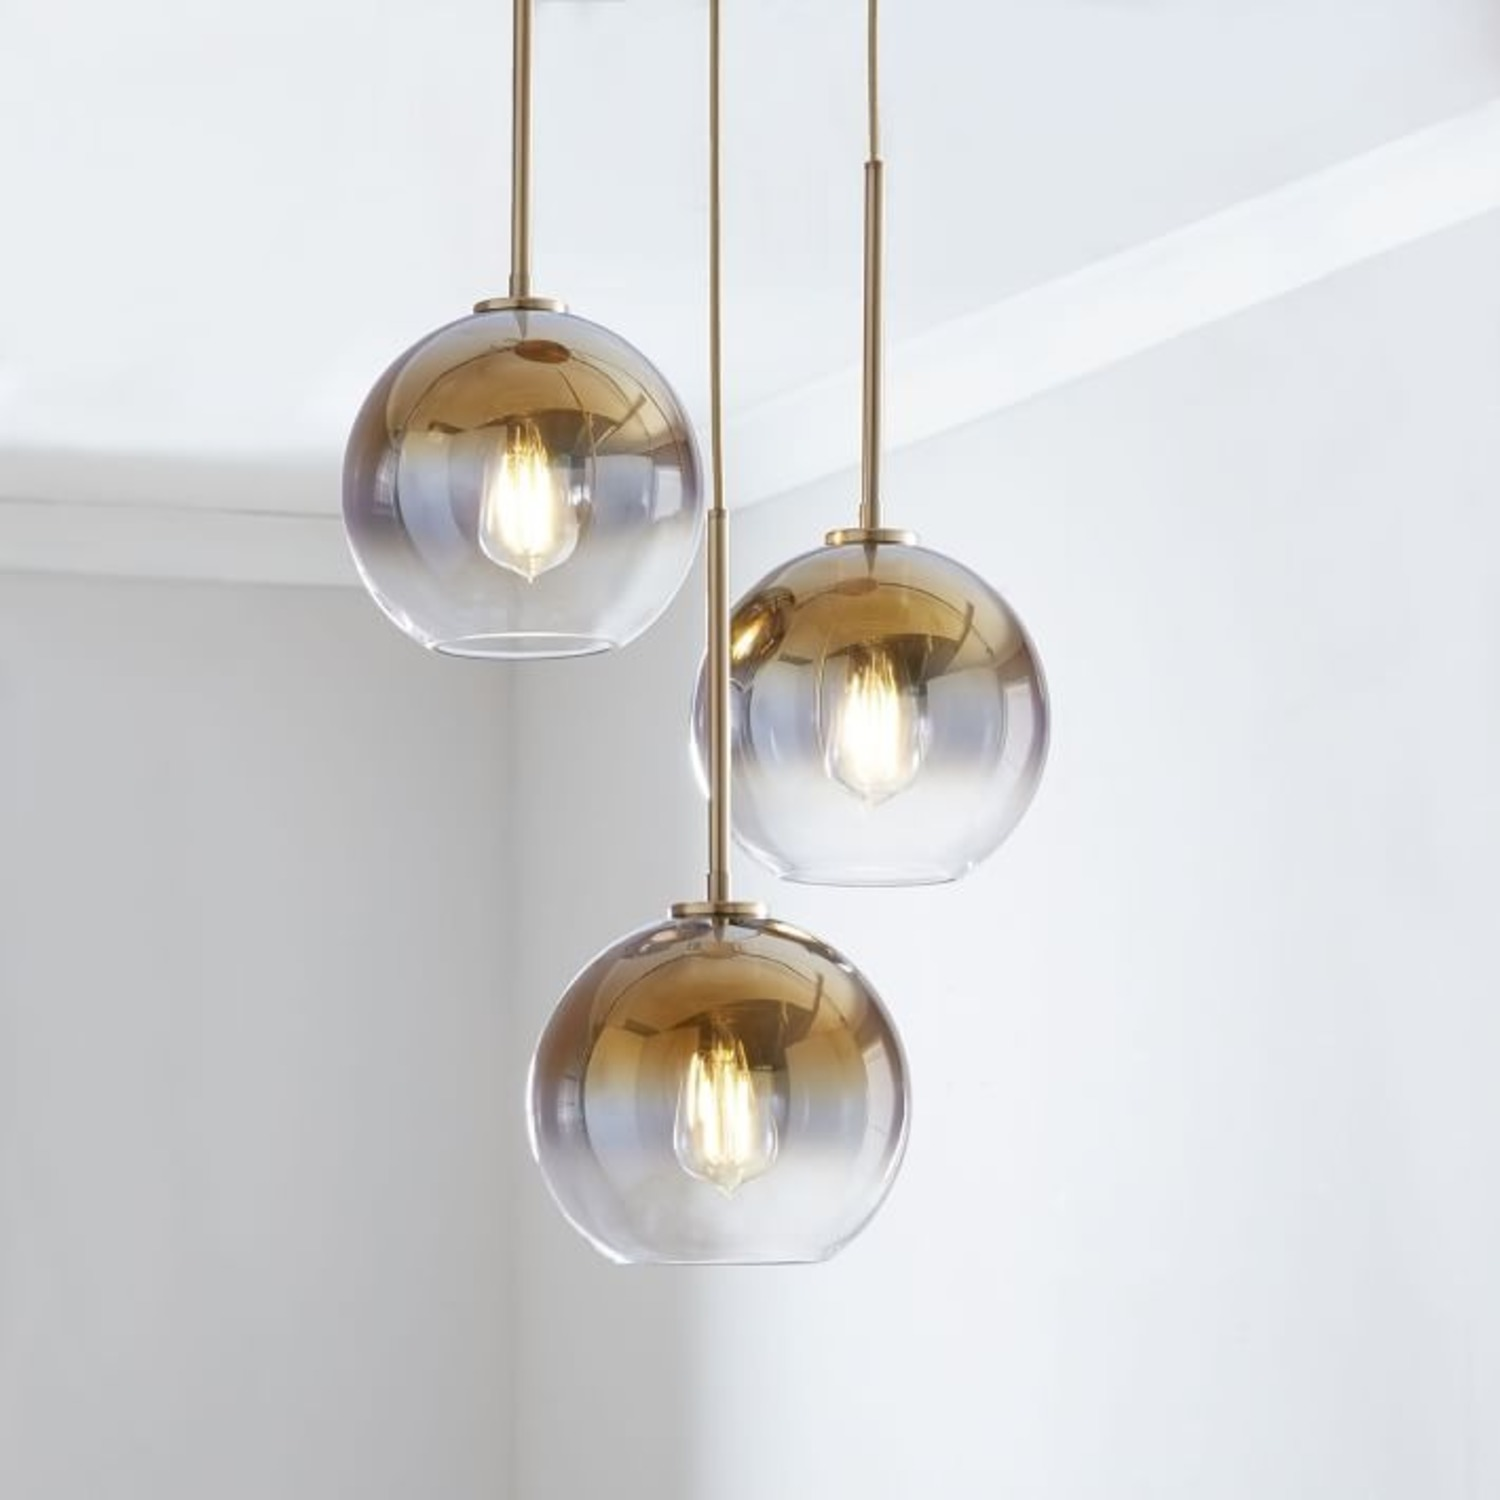 West Elm Sculptural Glass 3 Light Globe Chandelier